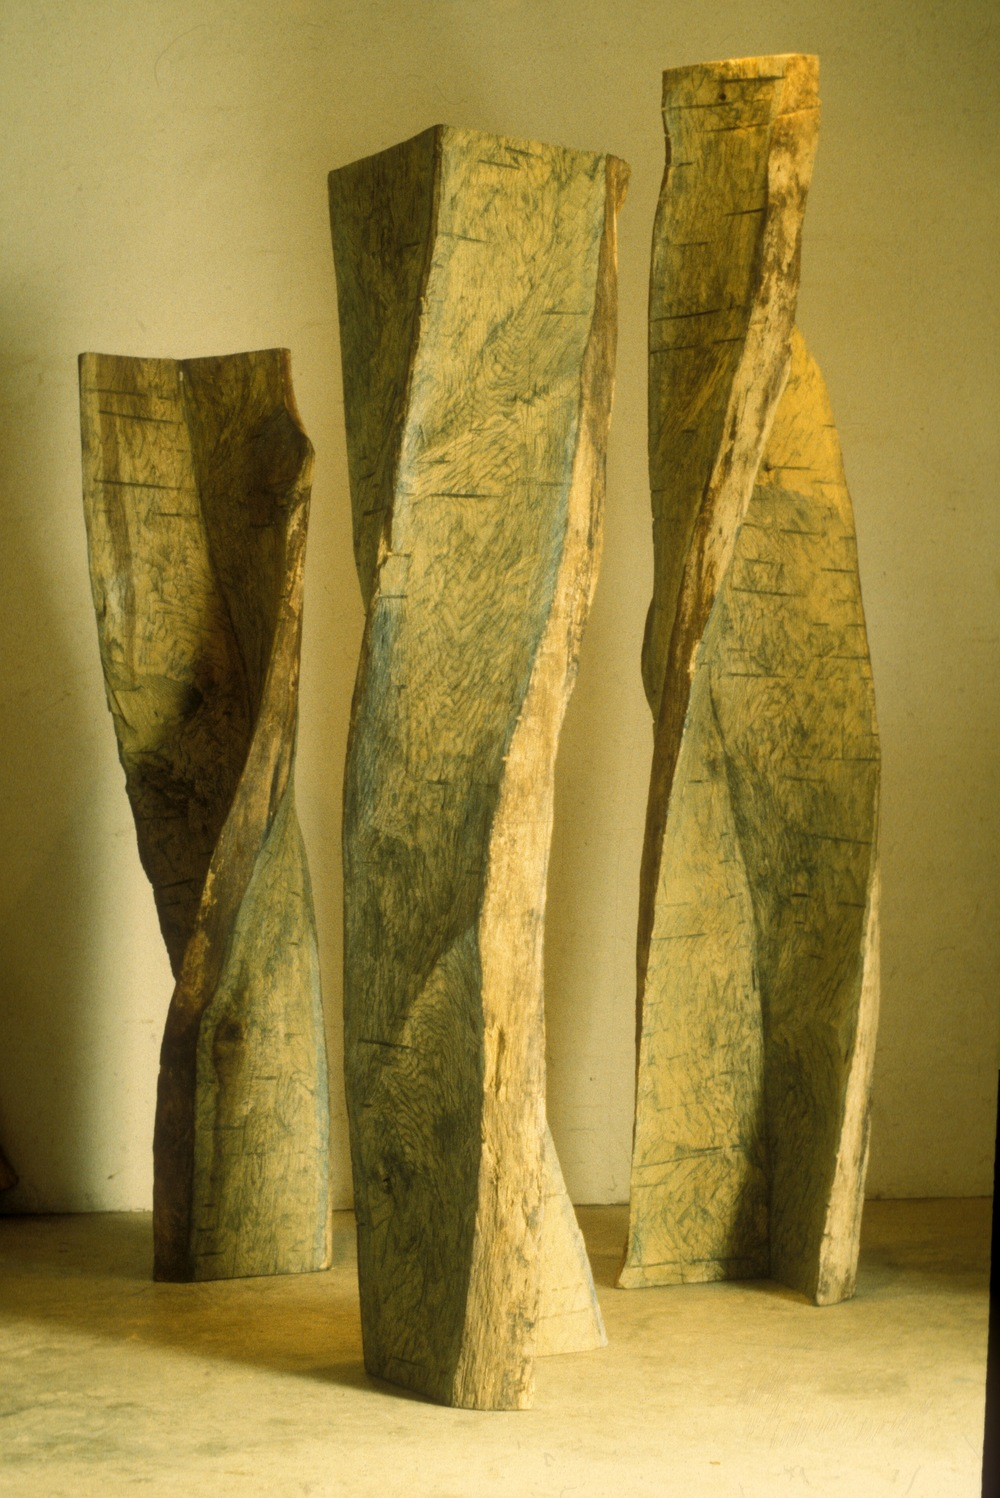 White Oak Verticals, 2003.